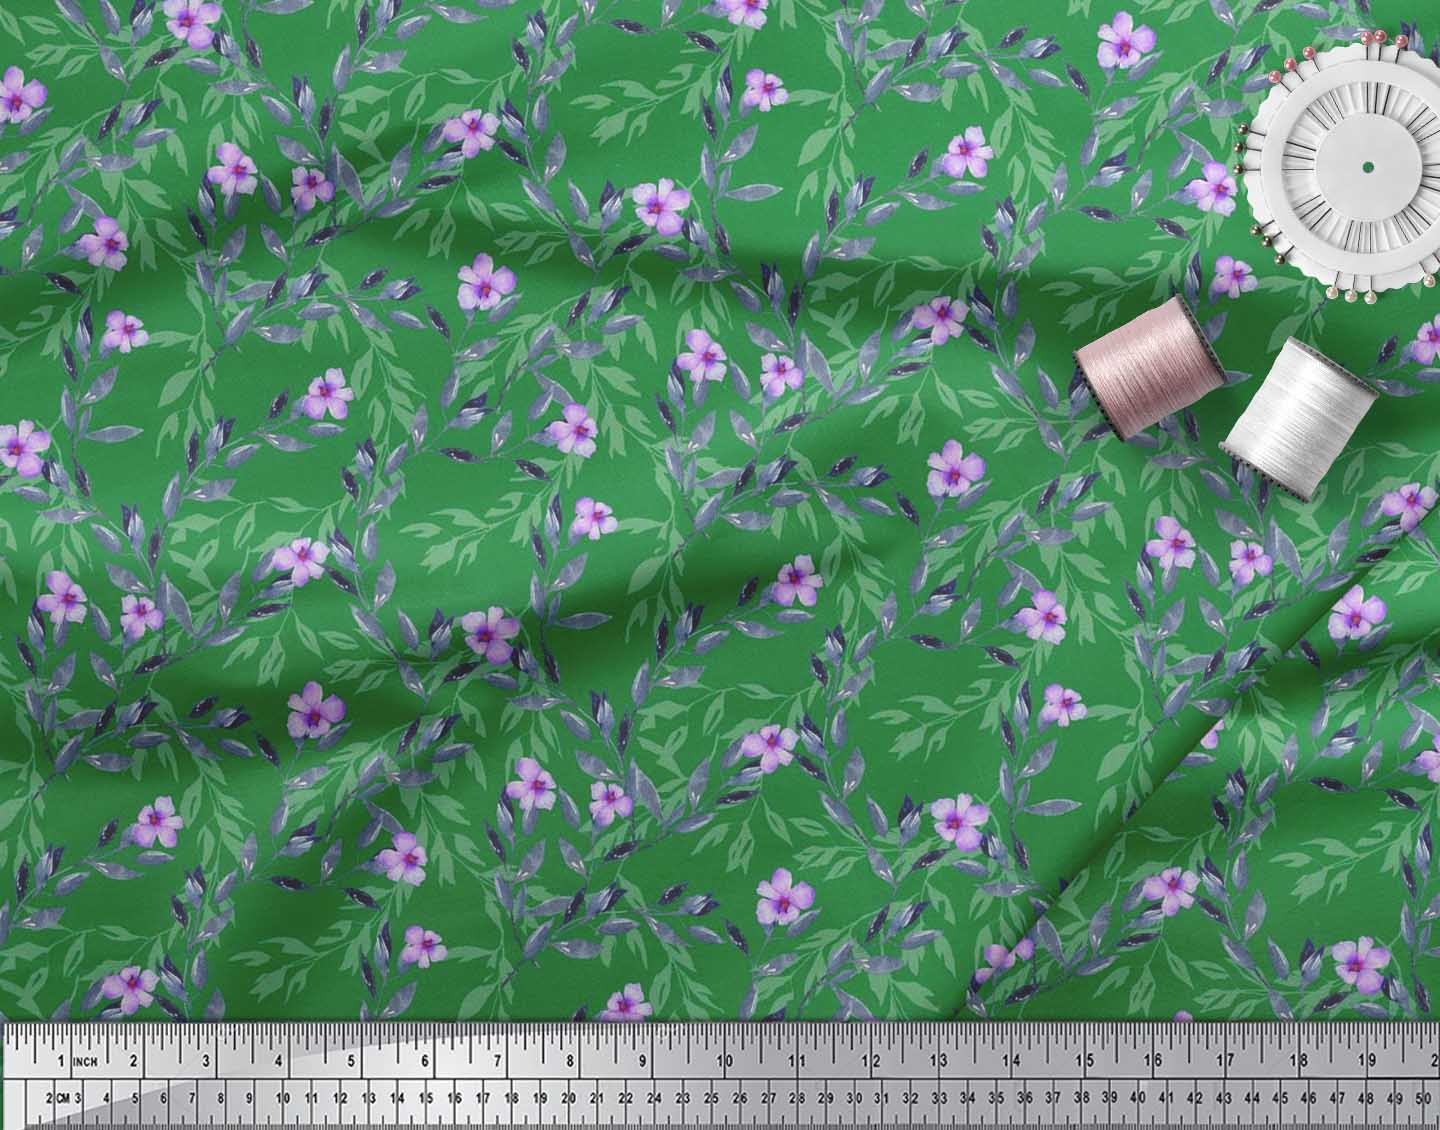 Soimoi-Cotton-Poplin-Fabric-Leaves-amp-Periwinkle-Floral-Printed-Craft-cnk thumbnail 4